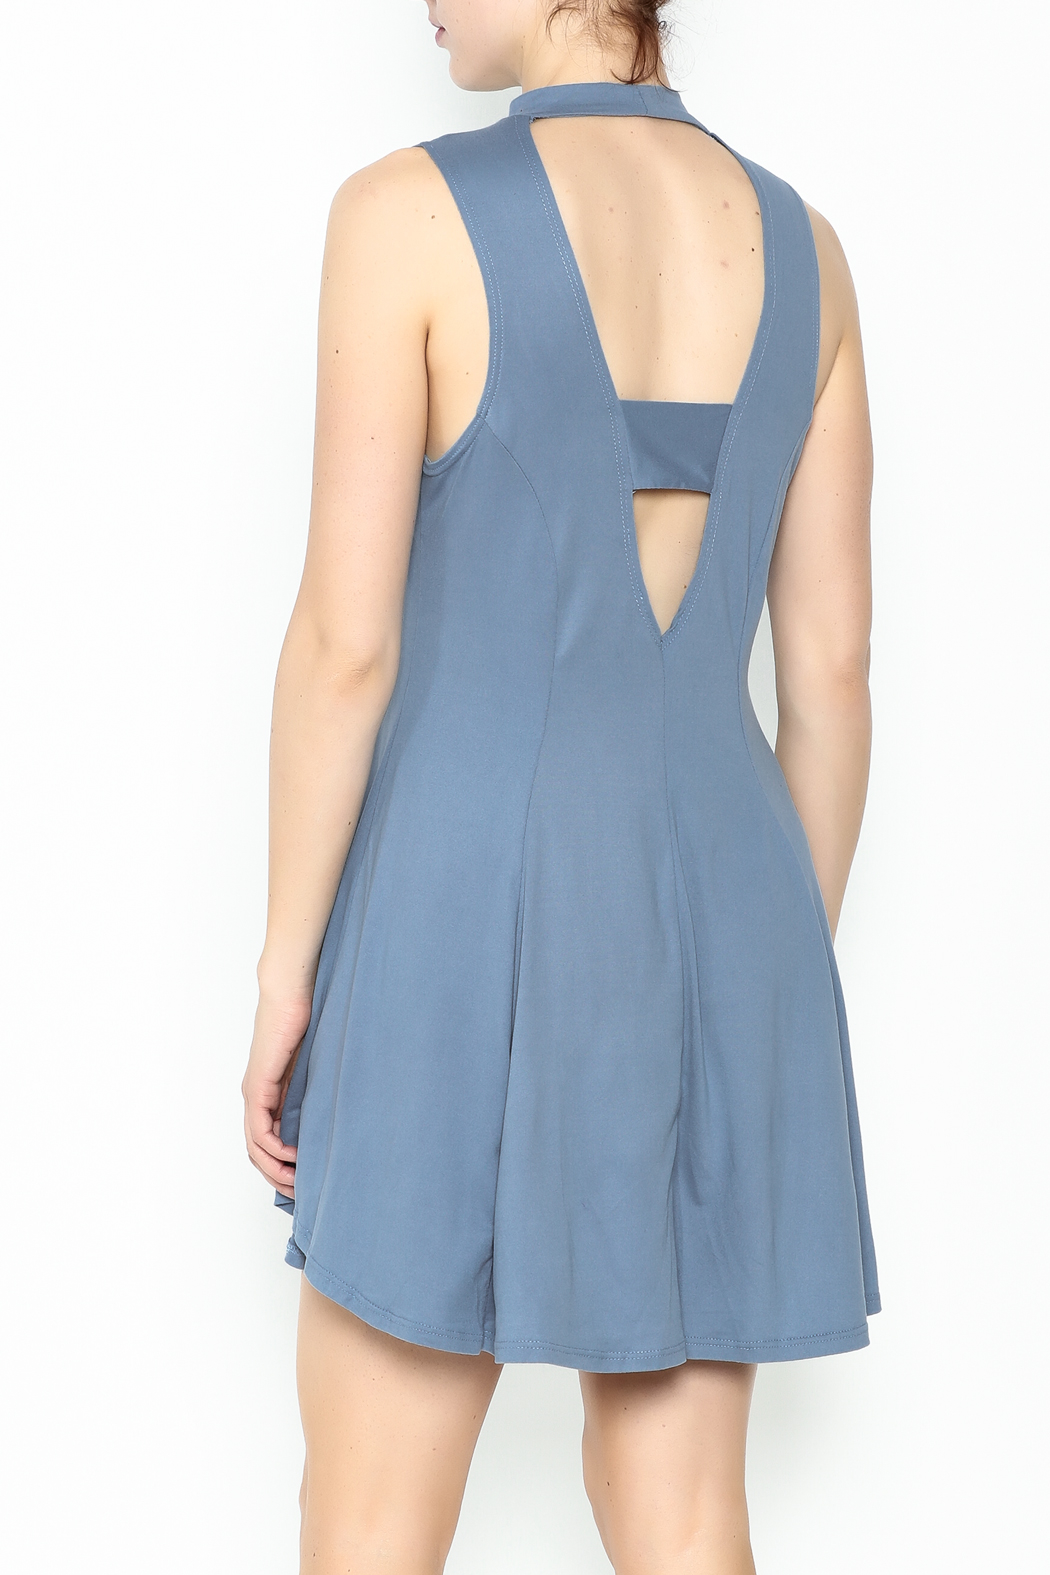 jella c Open Back Skater Dress - Back Cropped Image